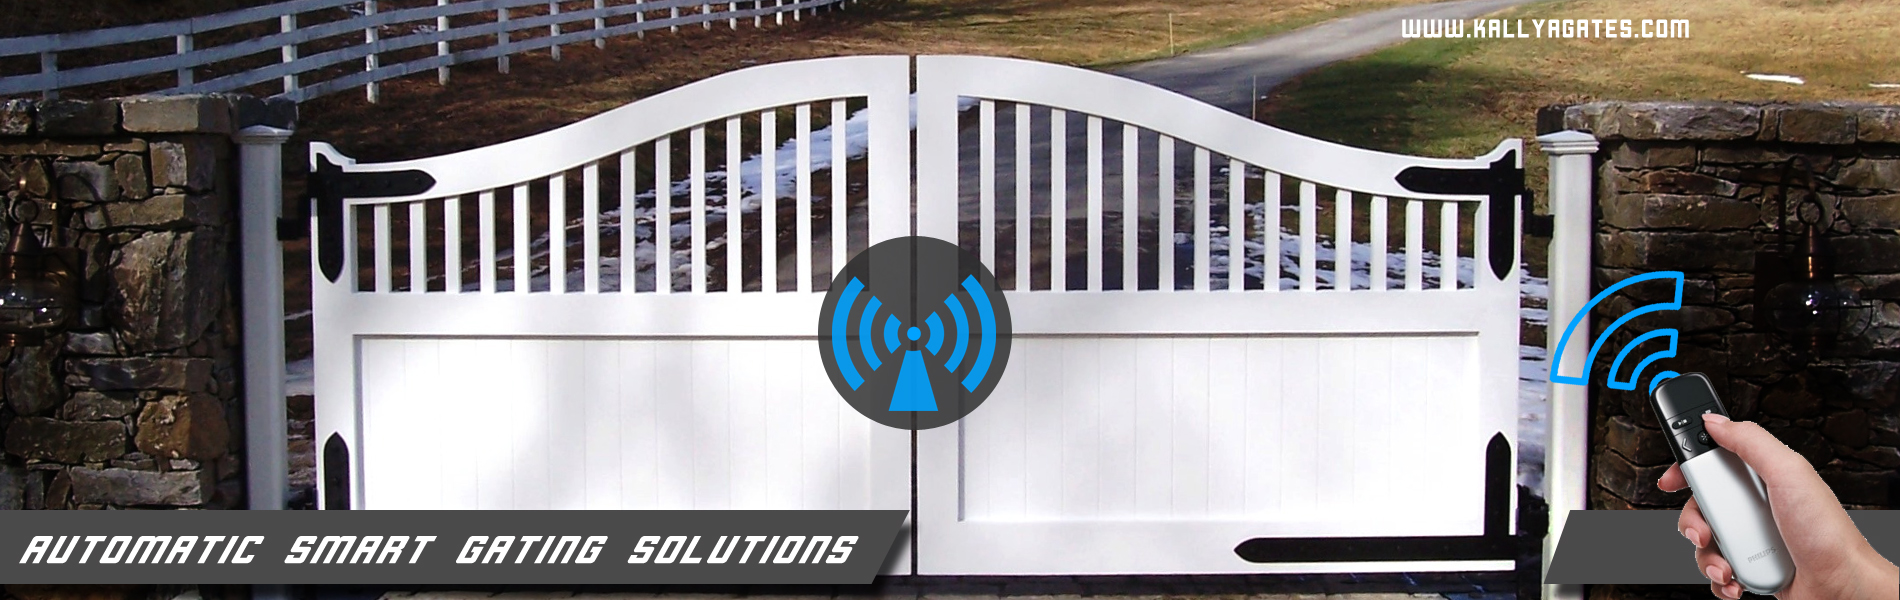 automatic gate manufacturer kerala